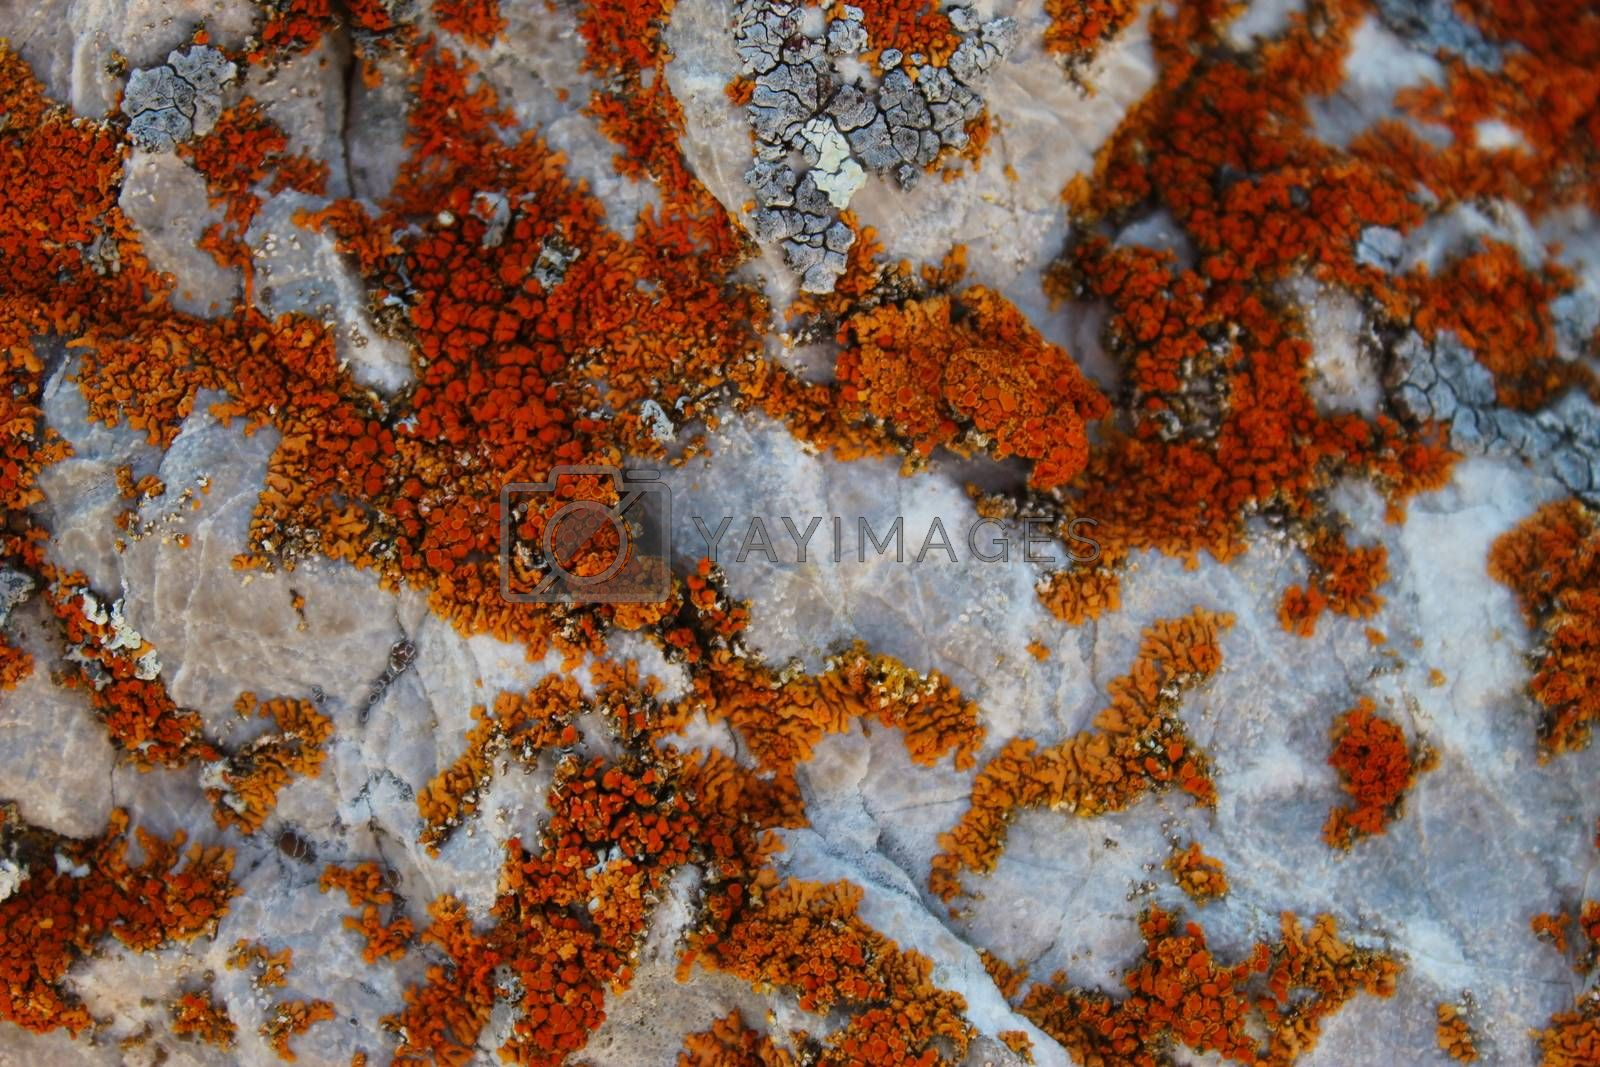 Many small colonies of orange lichen on the stone. On the mountain Bjelasnica, Bosnia and Herzegovina.